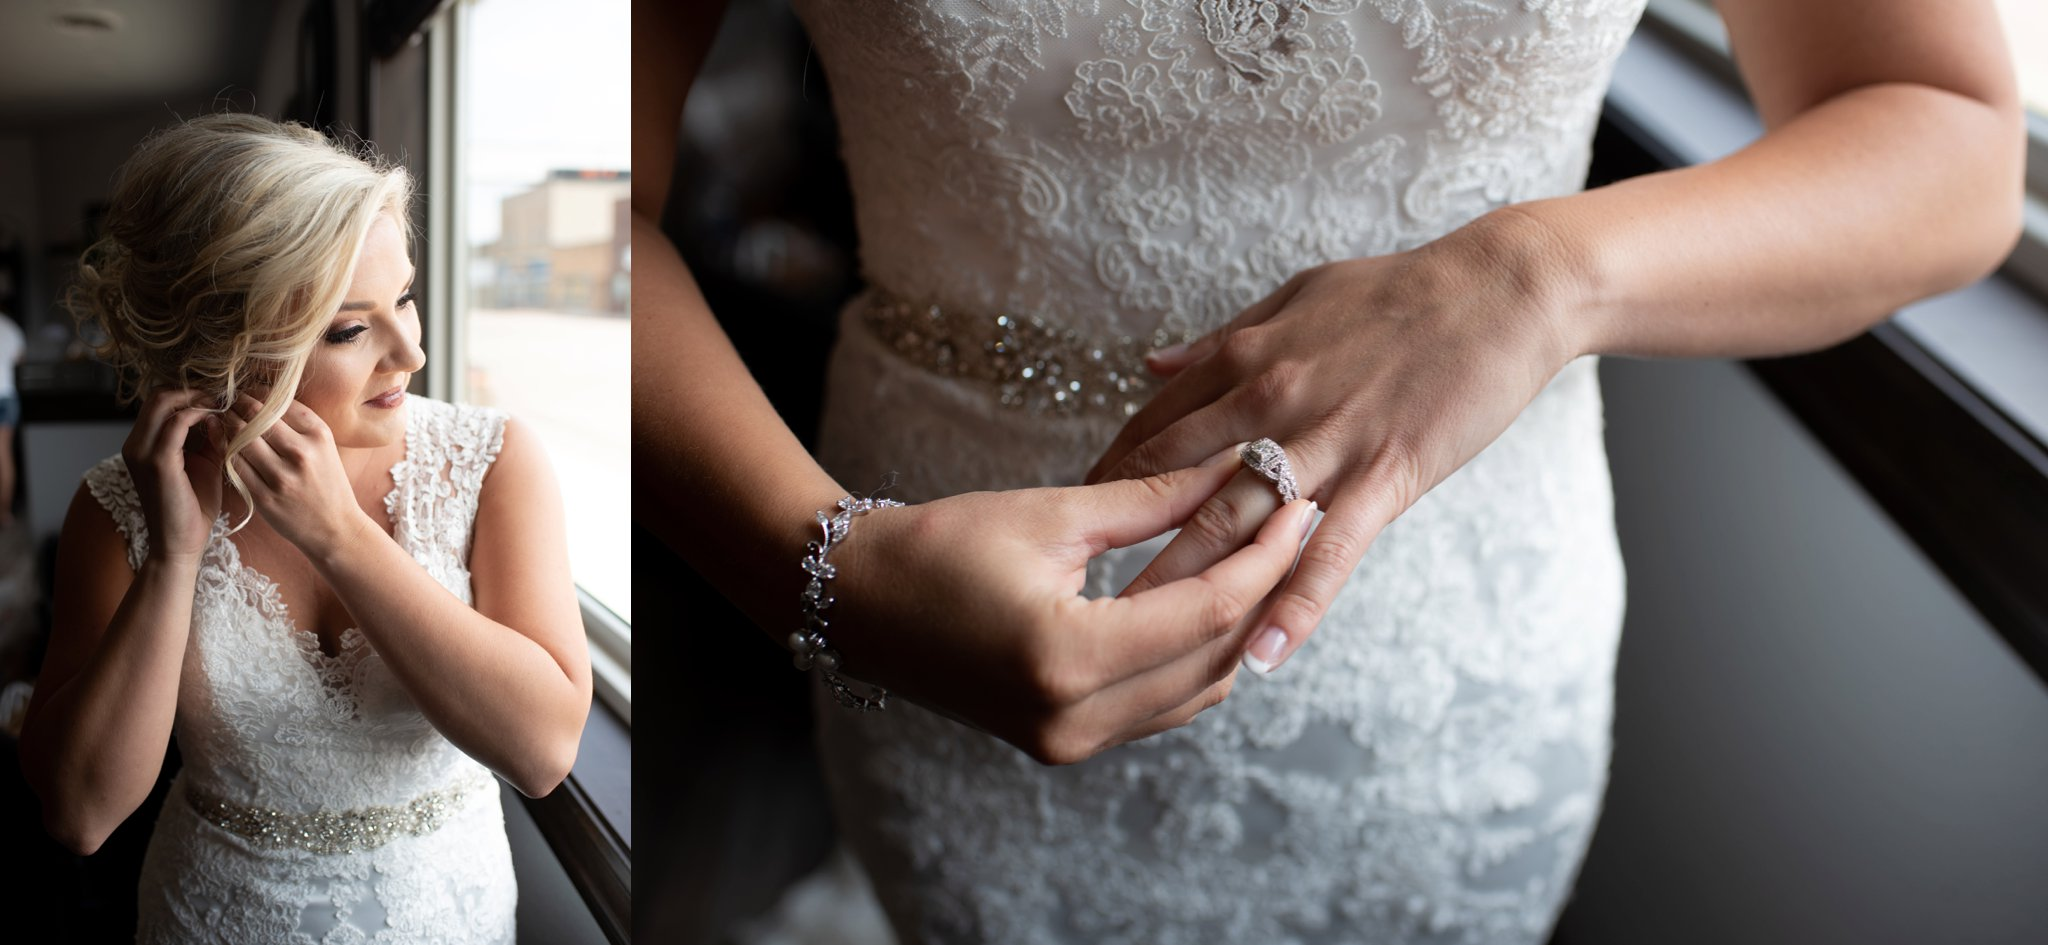 bride puts on wedding ring and earrings